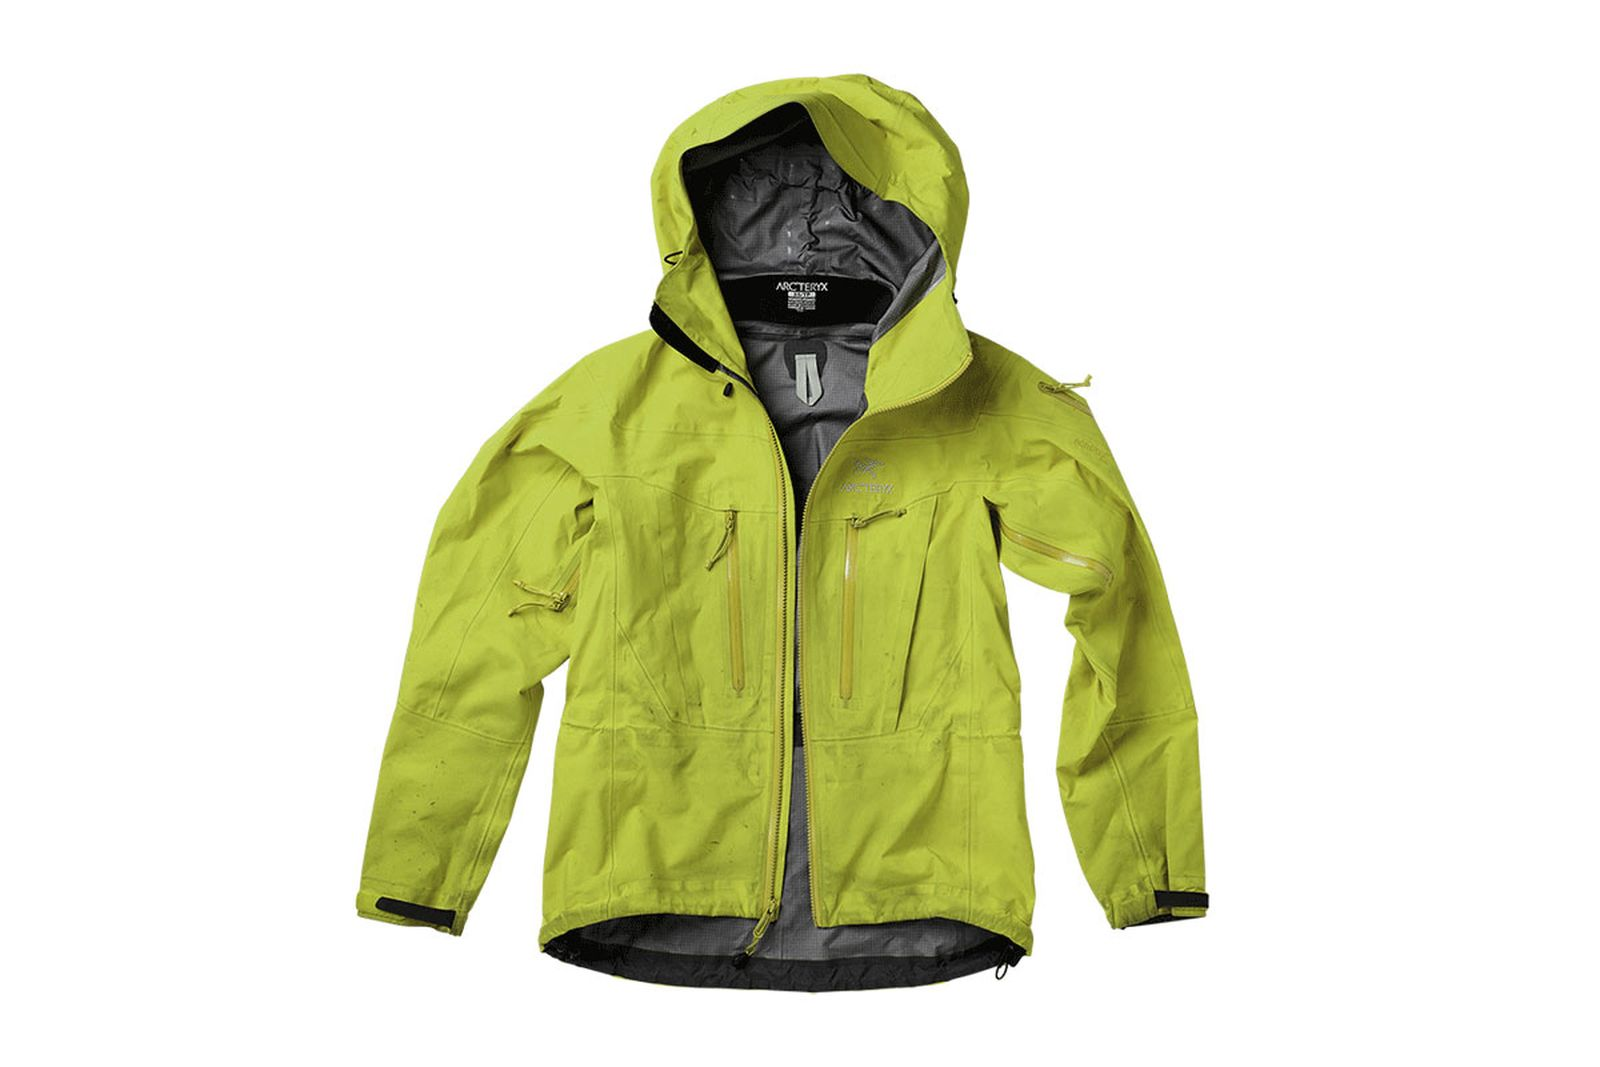 arcteryx recommerce program Grailed Patagonia The North Face